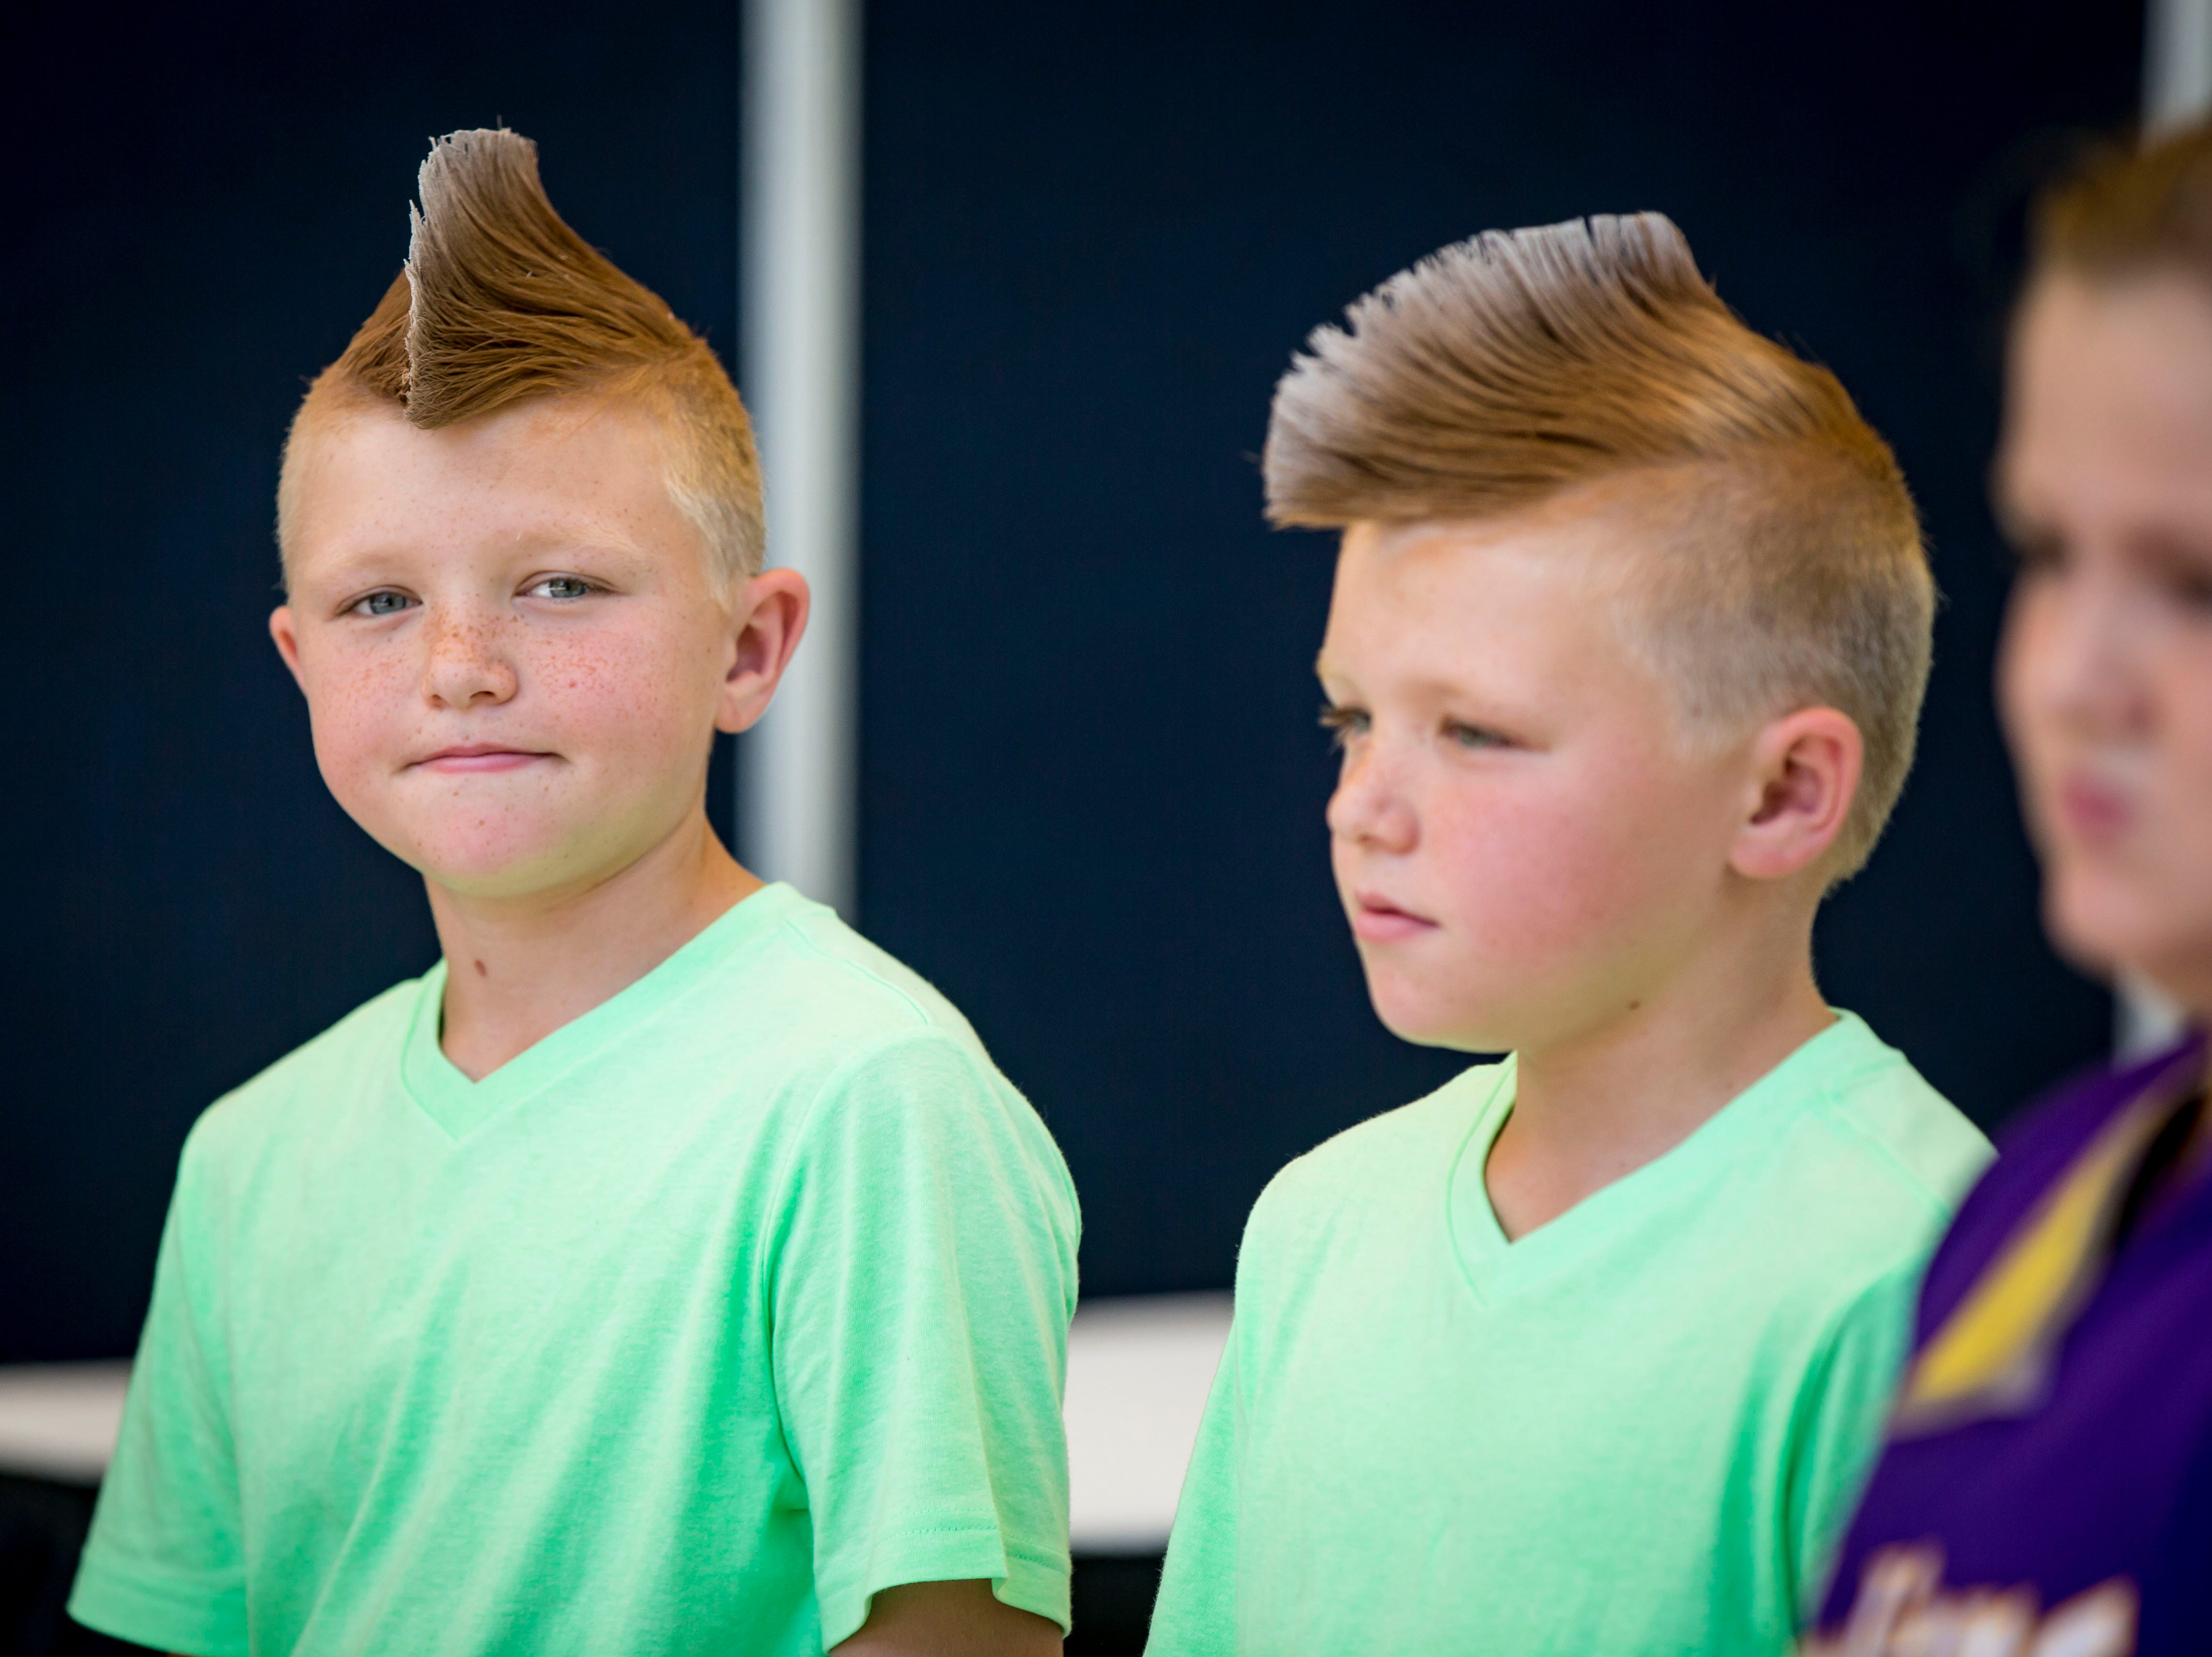 Dax, left, and Colby Putz of Otley during the Twins, Triplets and More Contest on the Anne and Bill Riley Stage at the 2018 Iowa State Fair in Des Moines Thursday, Aug. 9, 2018.